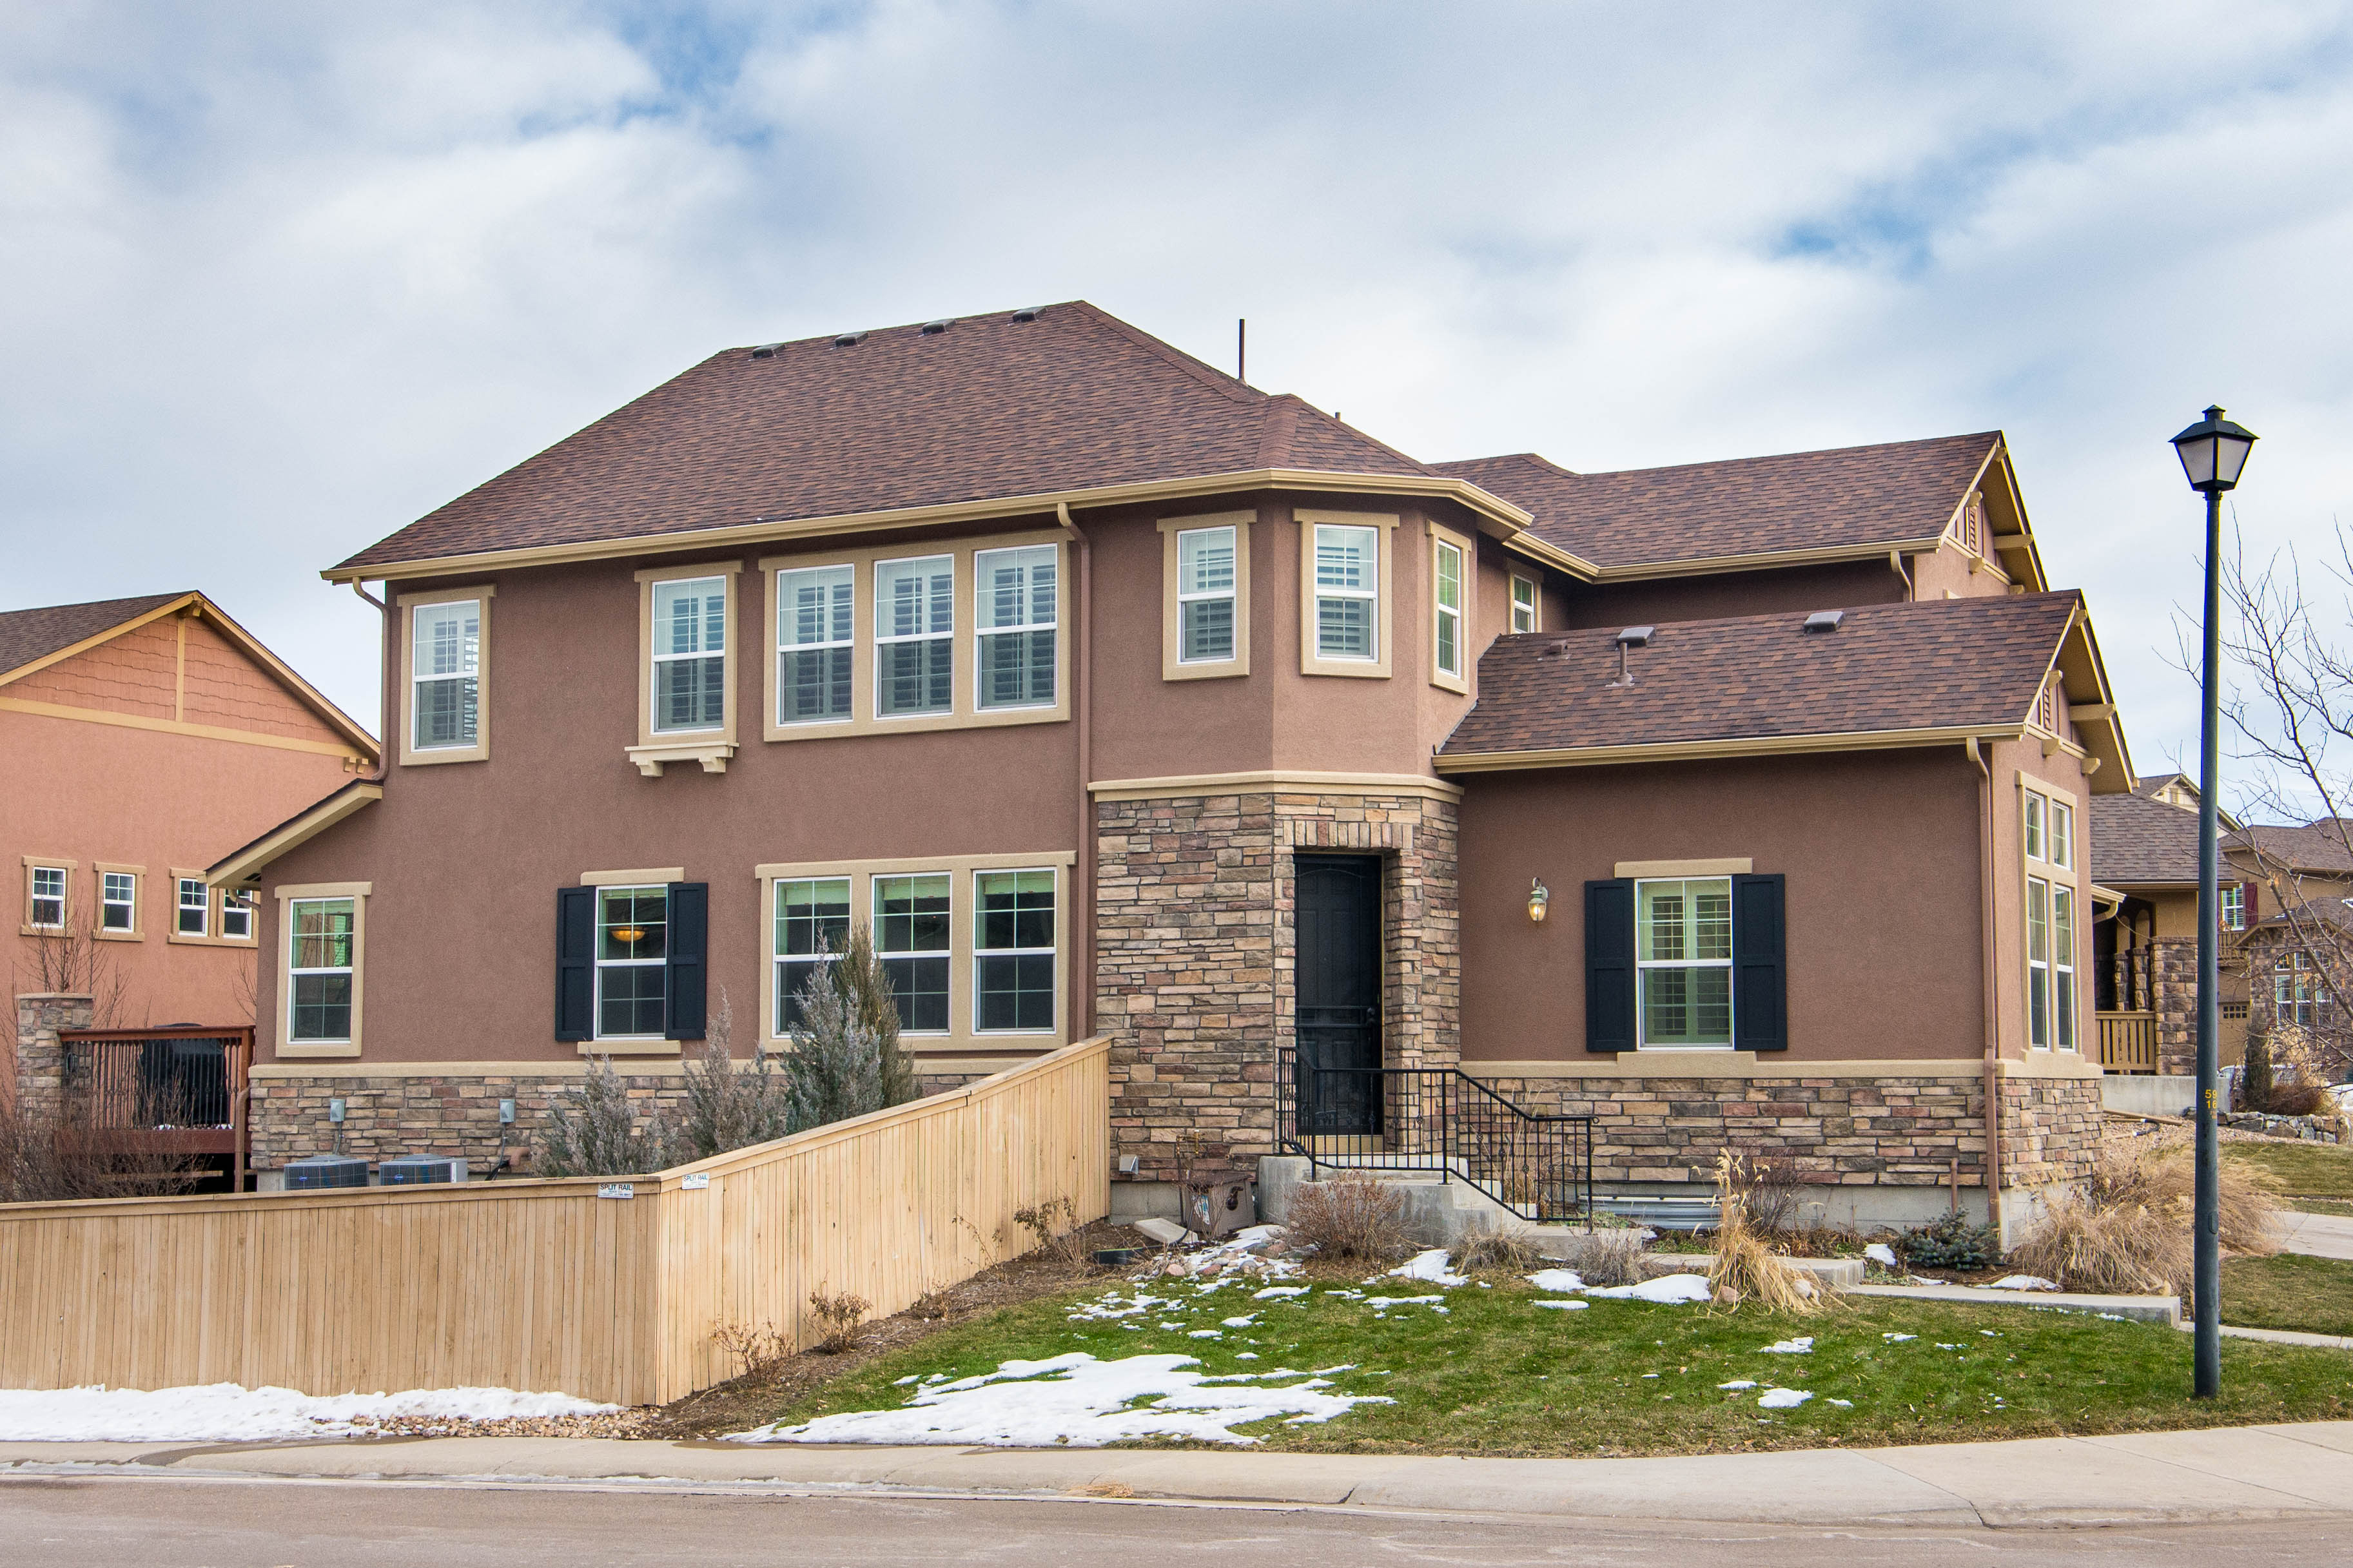 Property For Sale at Immaculate Bayberry model, built by Shea Homes